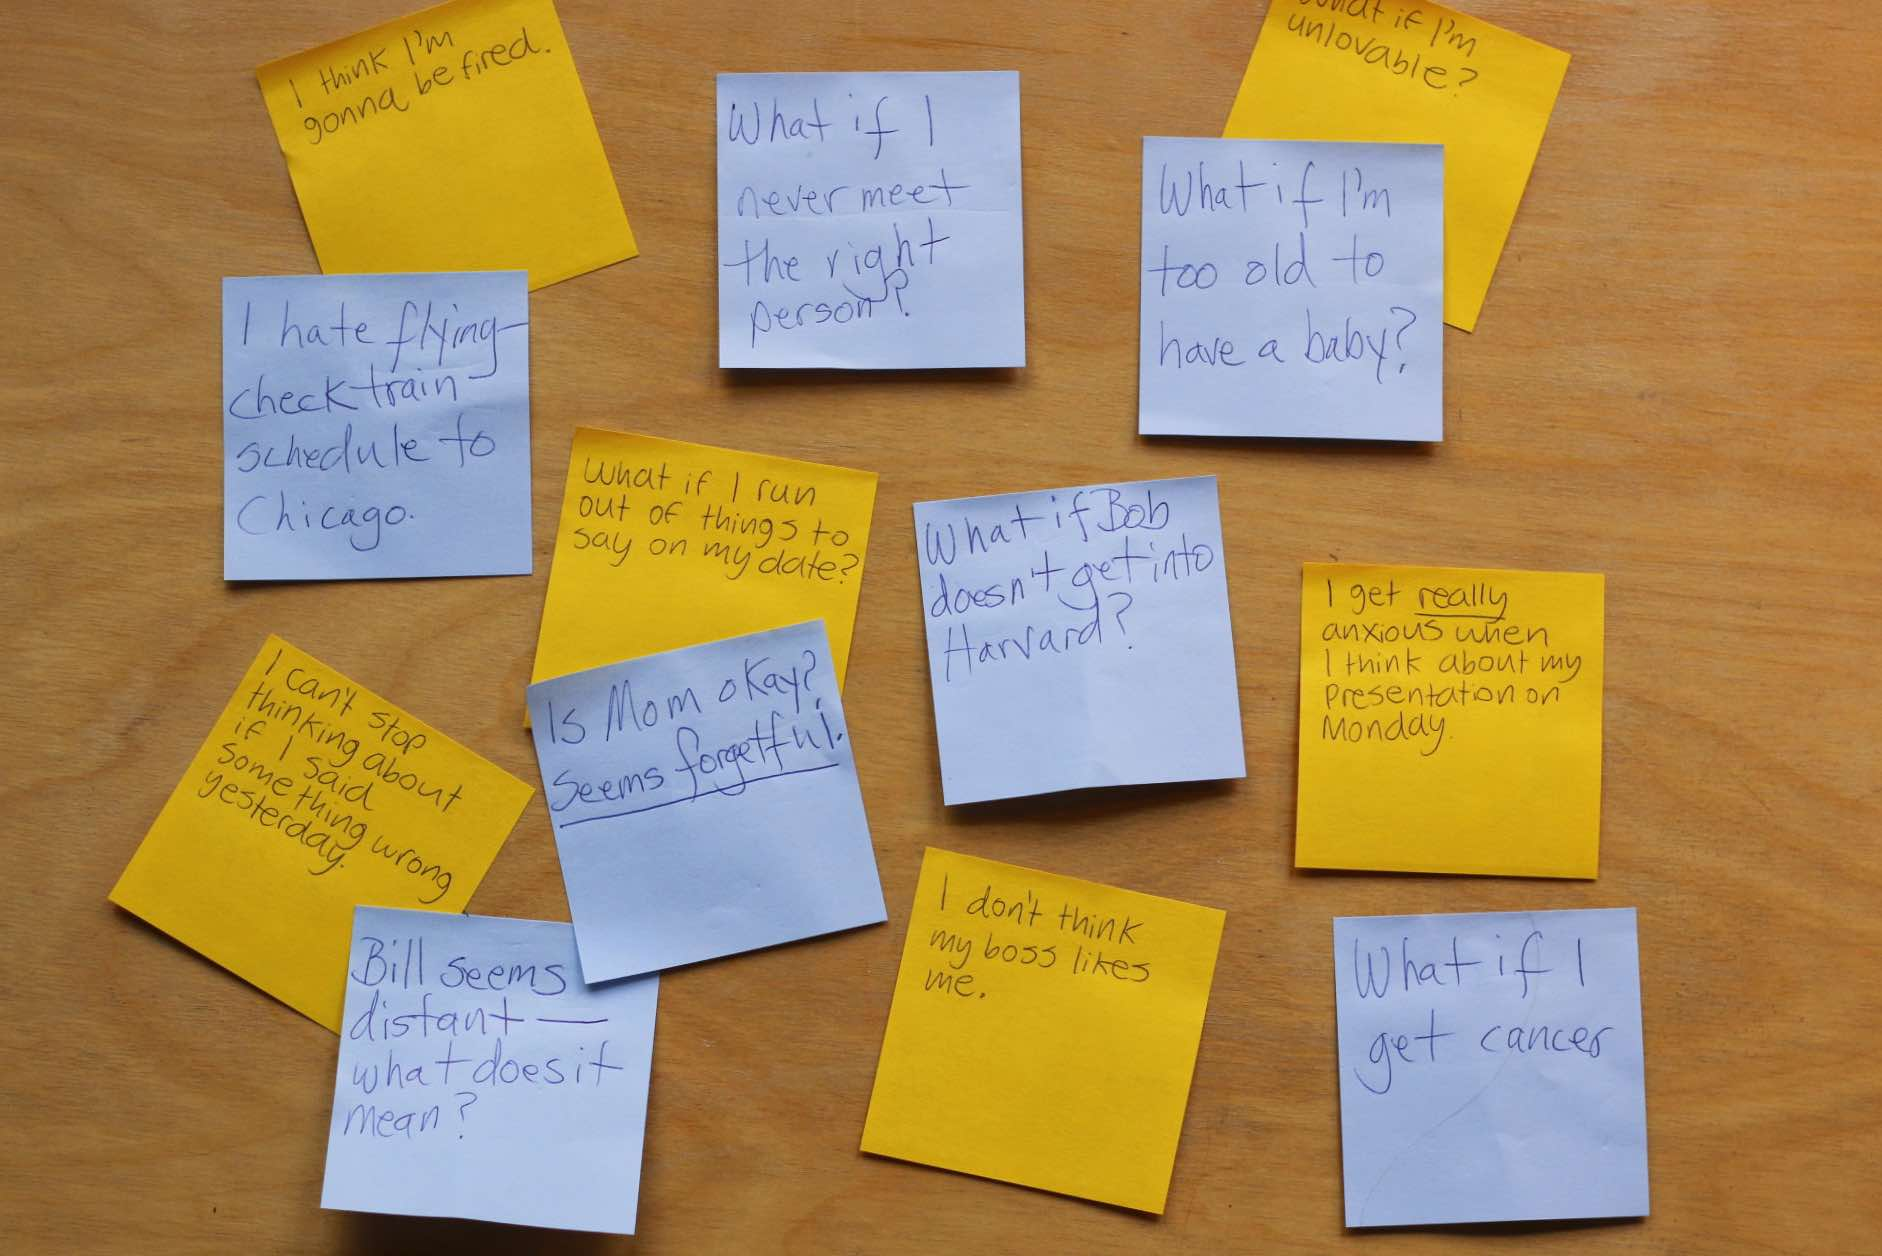 Post-it notes with worries